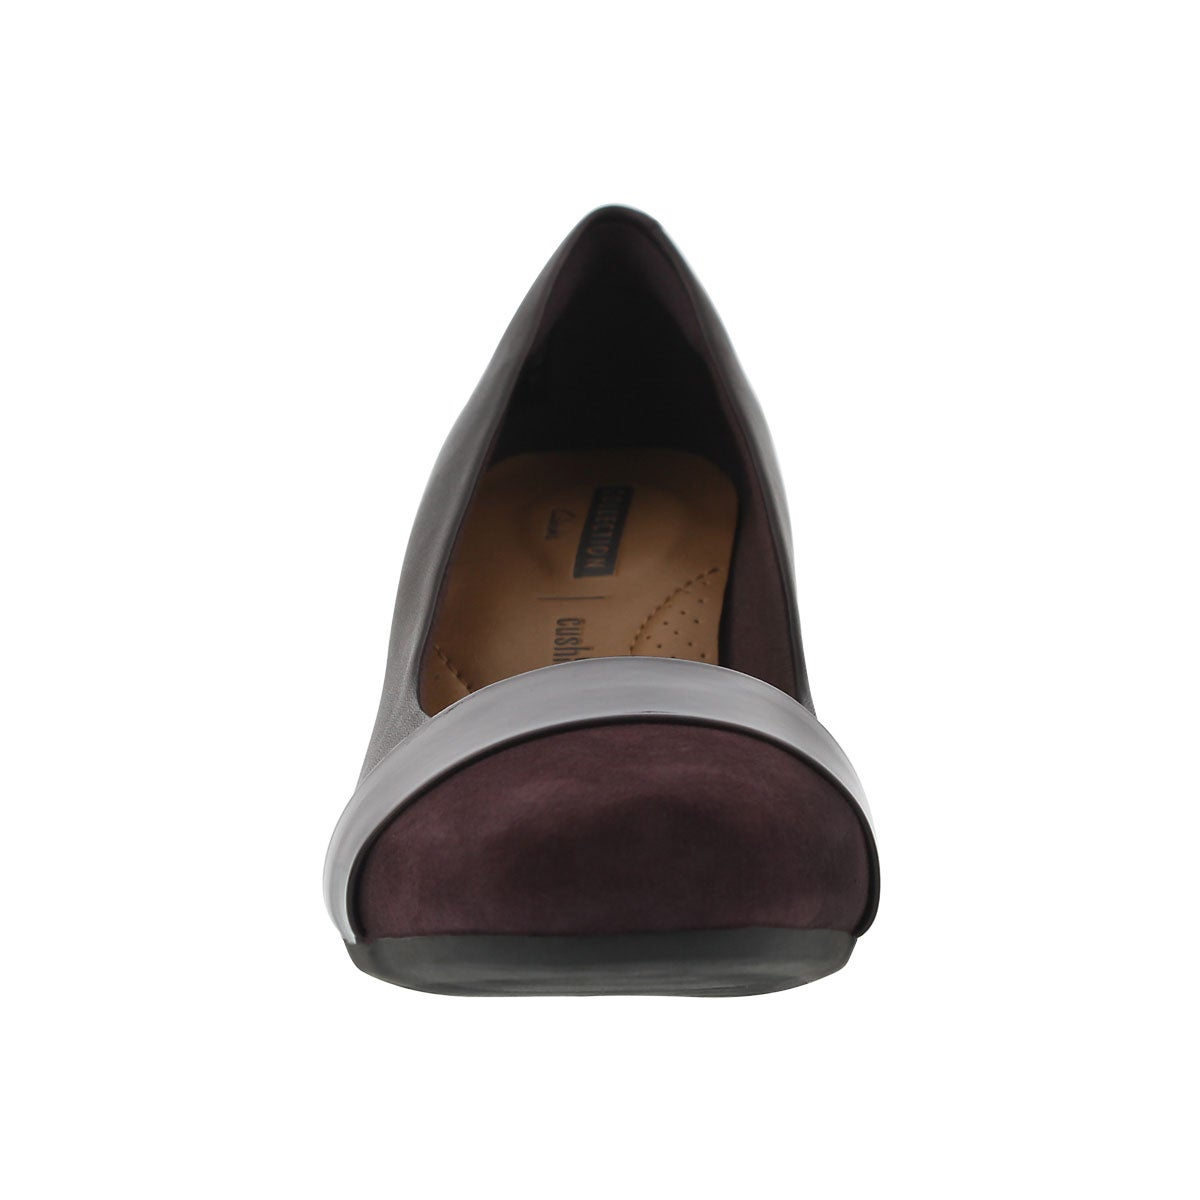 Lds Garnit Lucia aubergine dress heel